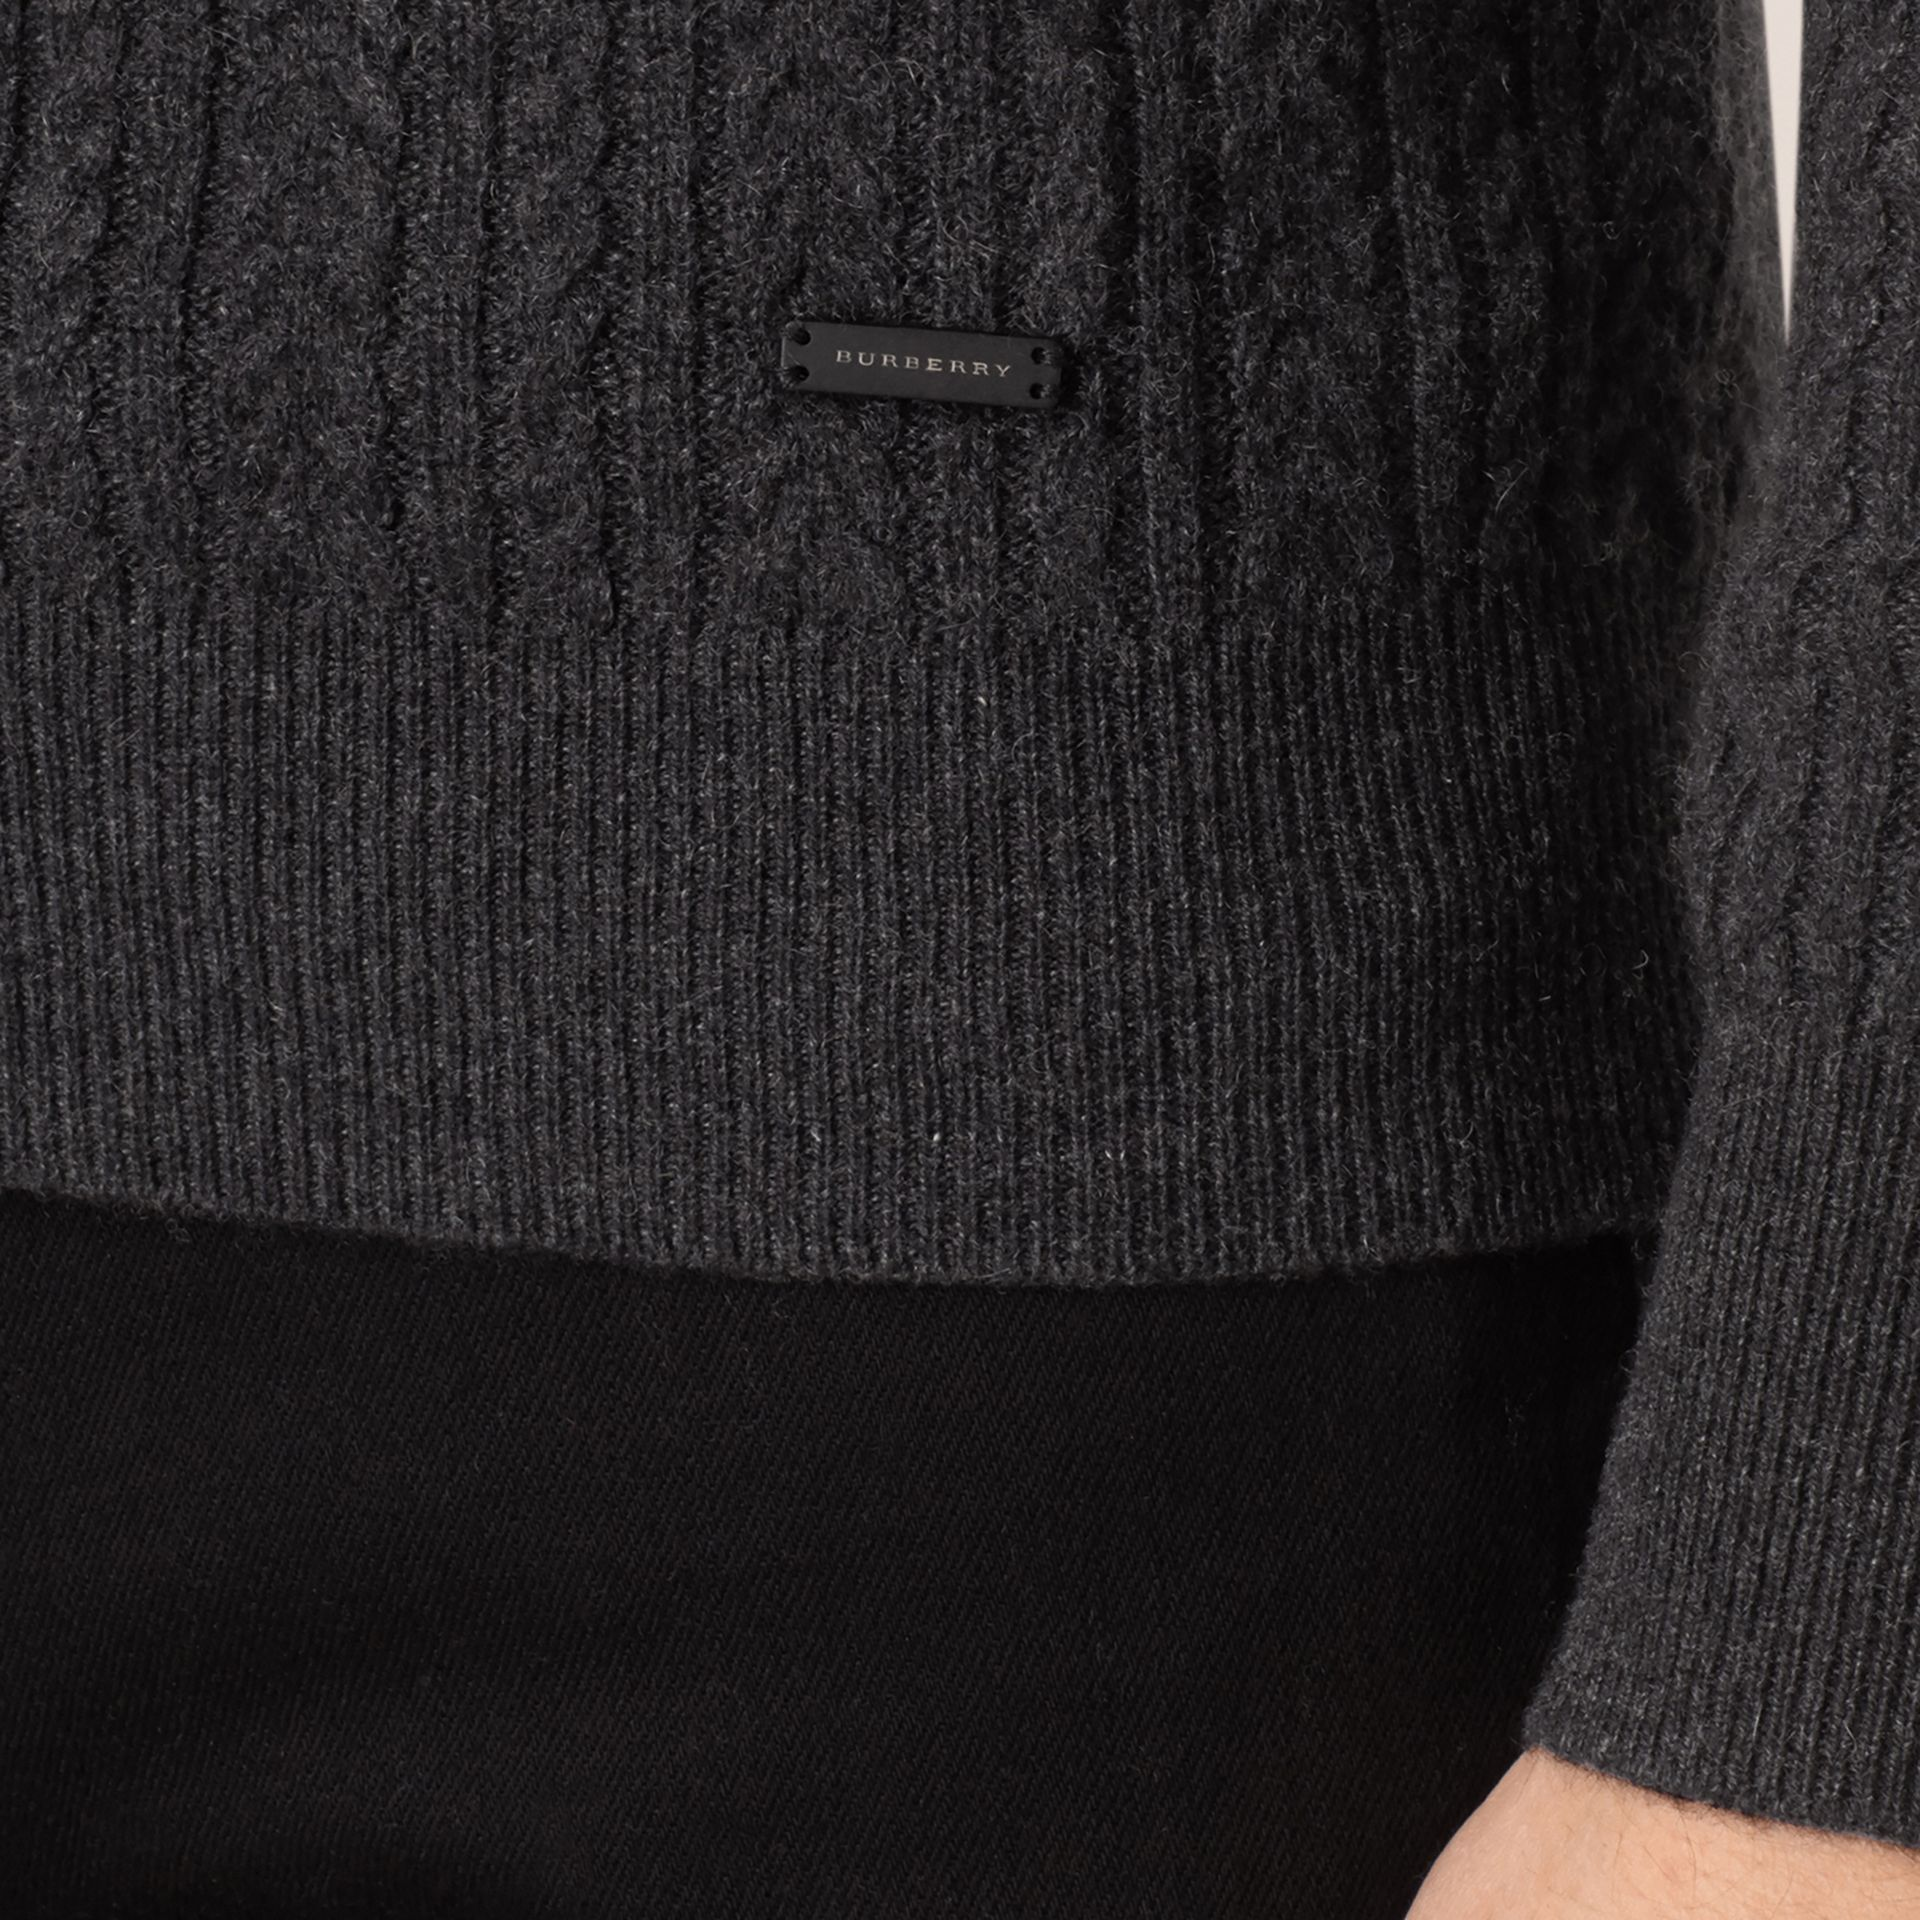 Charcoal Aran Knit Cashmere Sweater Charcoal - gallery image 2